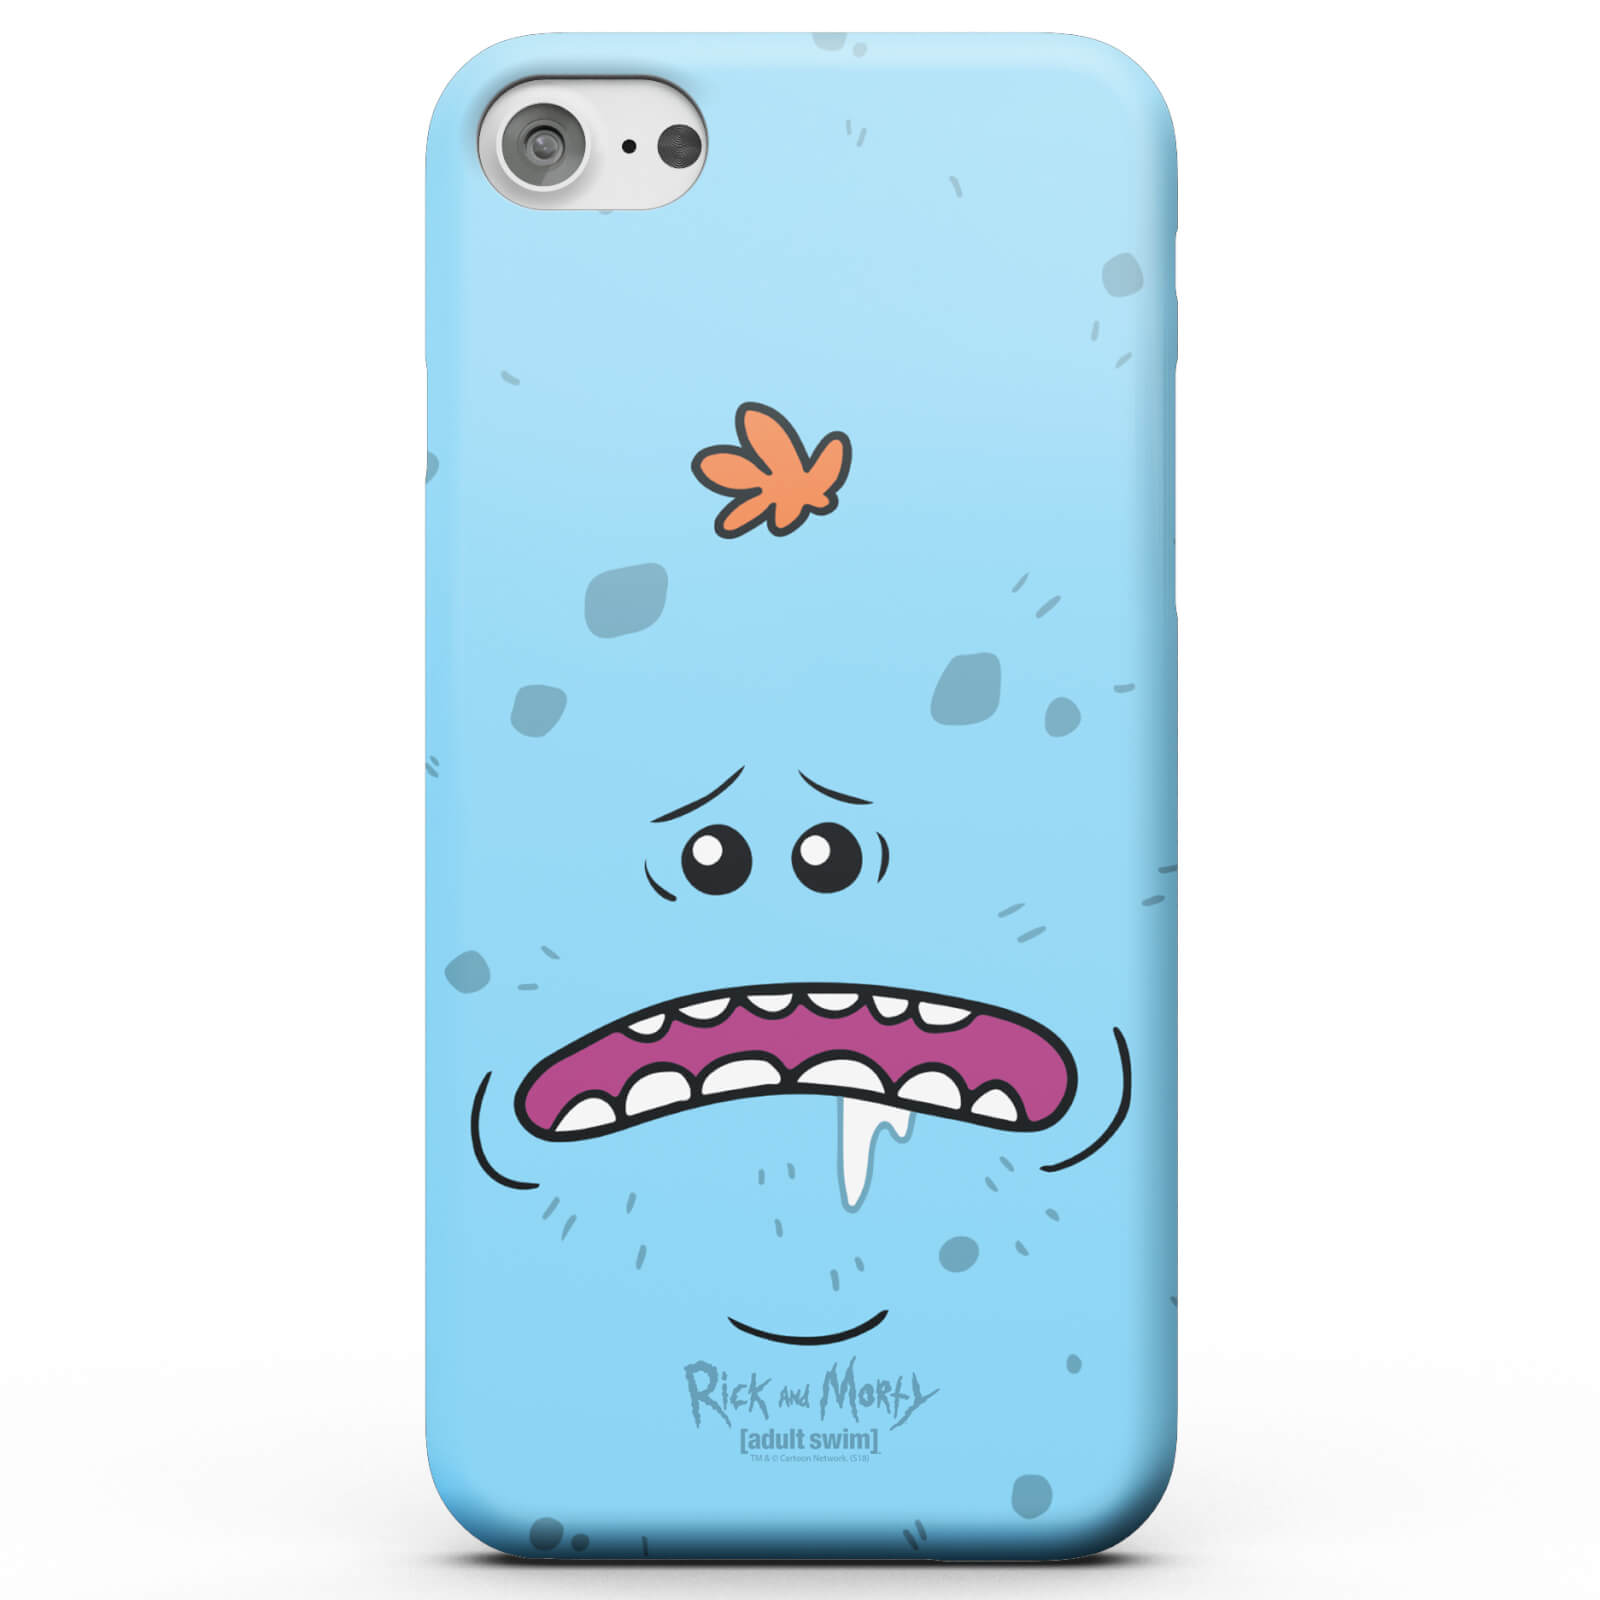 Funda Móvil Rick y Morty Mr Meeseeks para iPhone y Android - iPhone 11 - Carcasa rígida - Mate de Rick and Morty